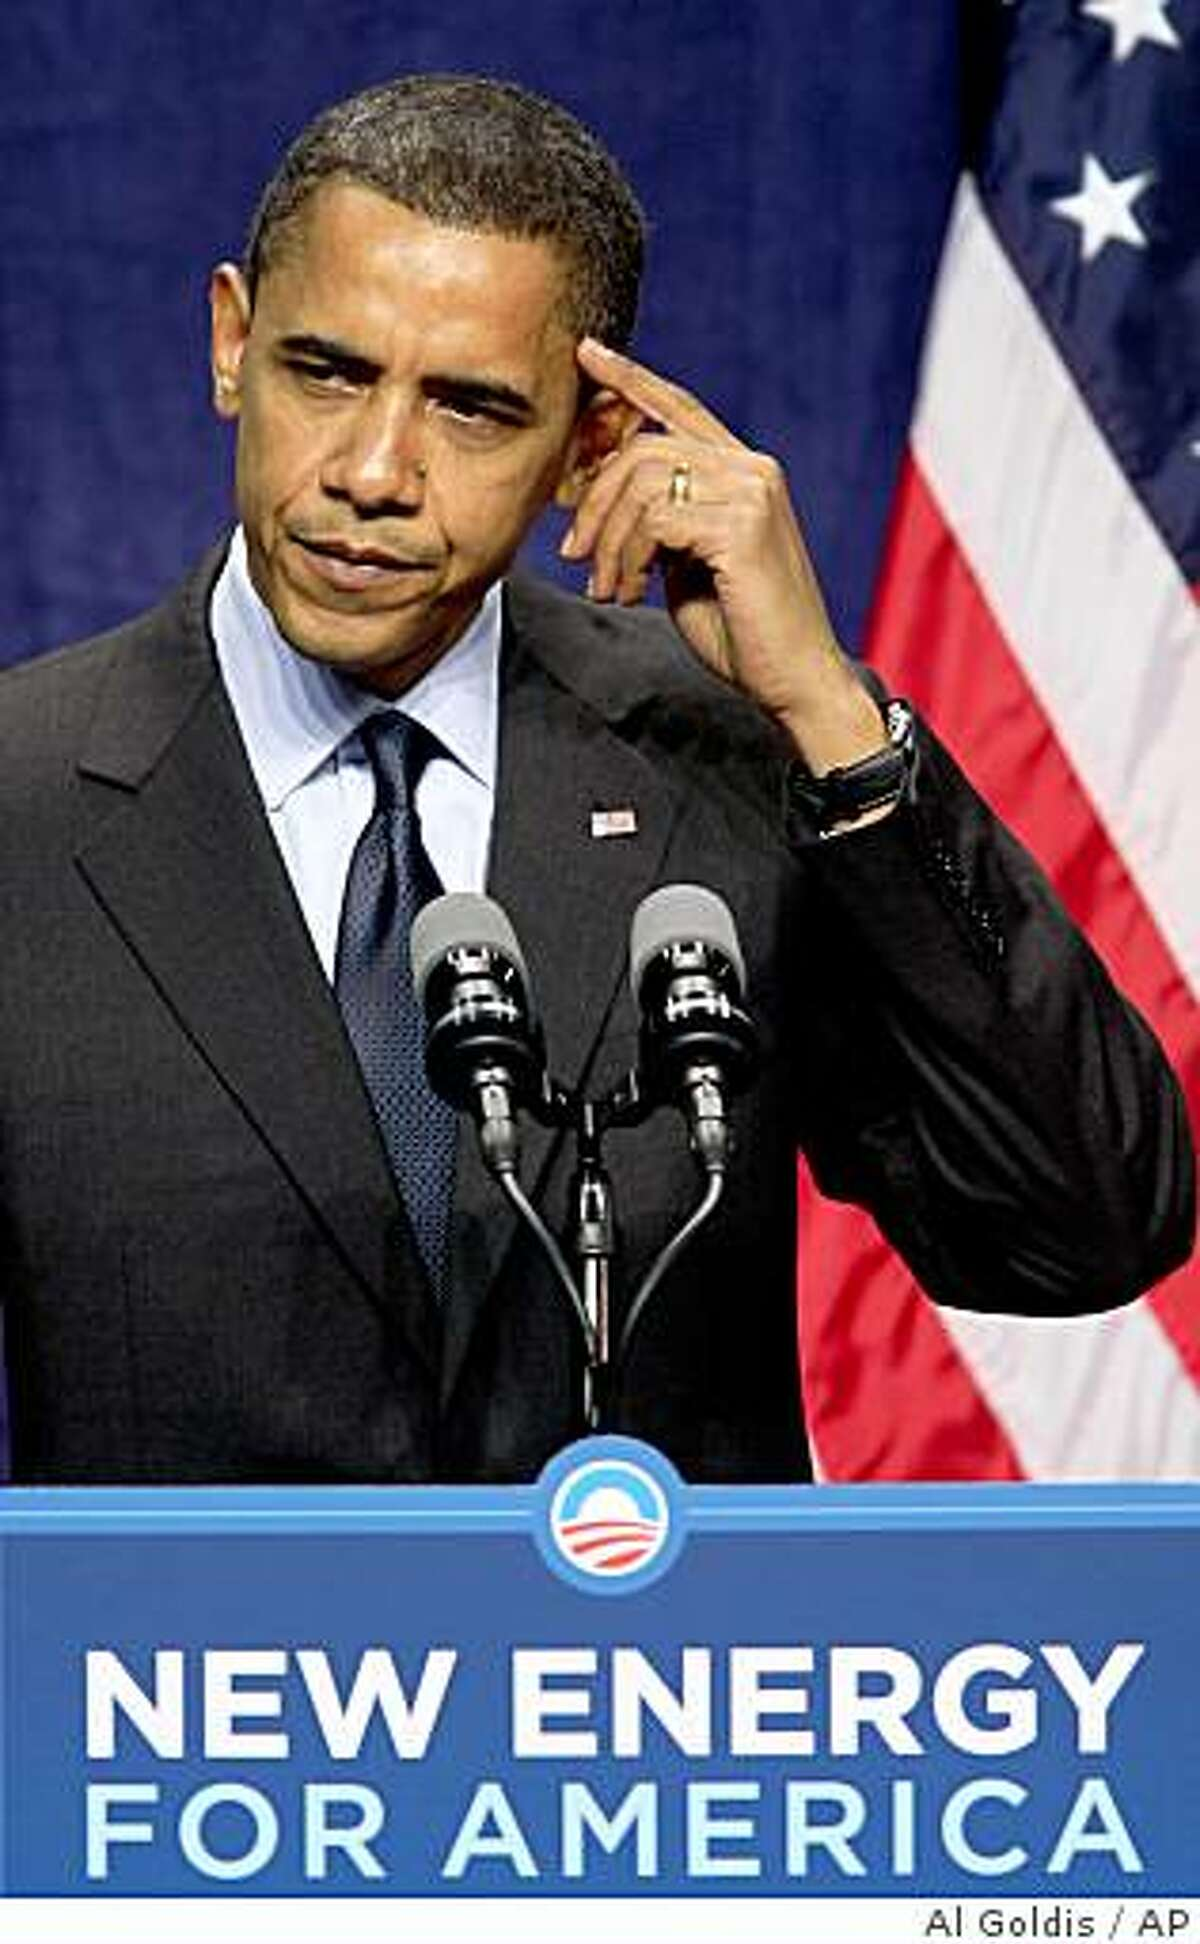 Democratic presidential candidate Sen. Barack Obama, D-Ill., speaks about his energy policy Monday, Aug. 4, 2008, in Lansing, Mich. (AP Photo/Al Goldis)